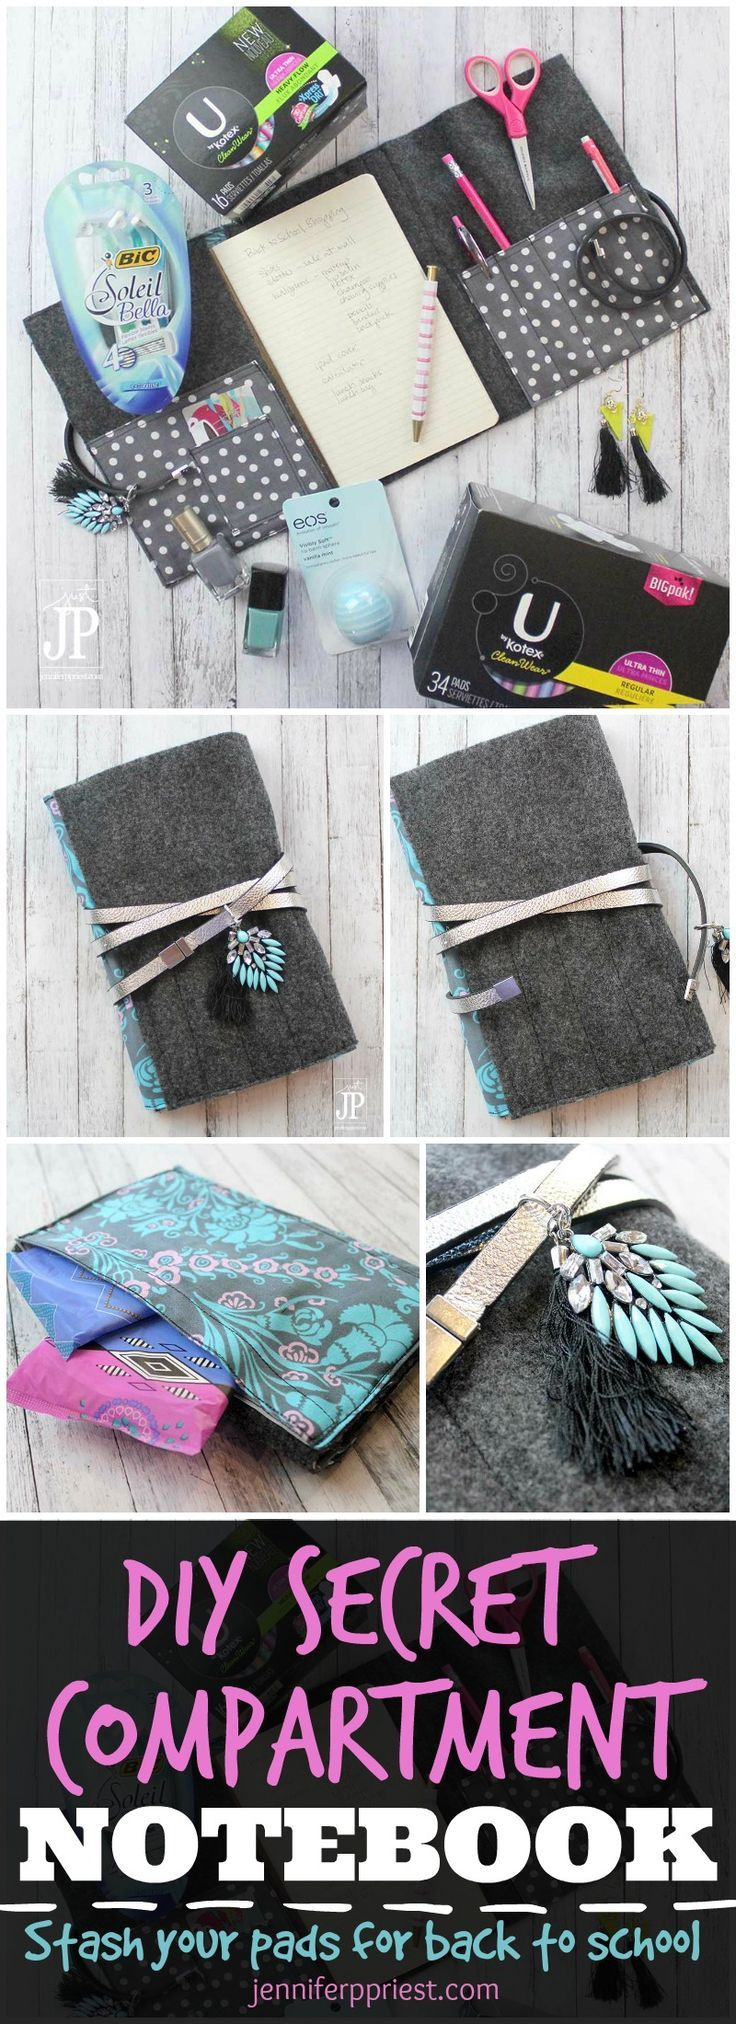 Period kit for school diy secret compartment notebook for Diy hidden compartment